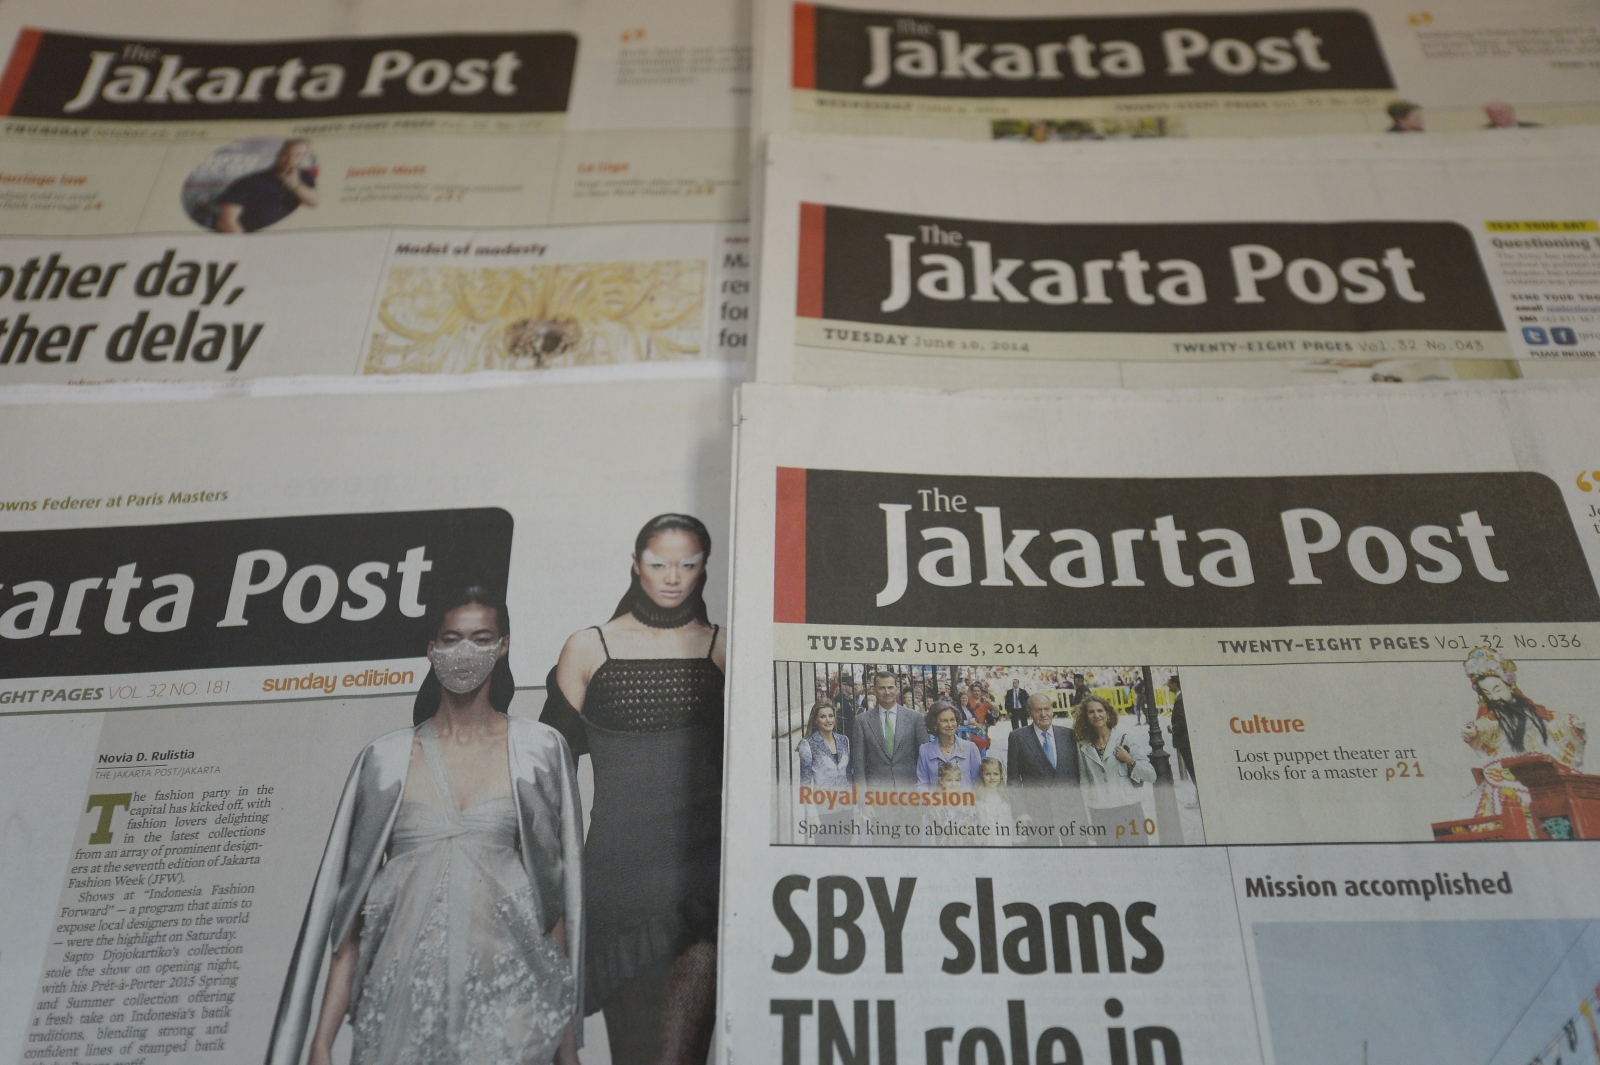 The Jakarta Post ISIS Cartoon Blasphemy